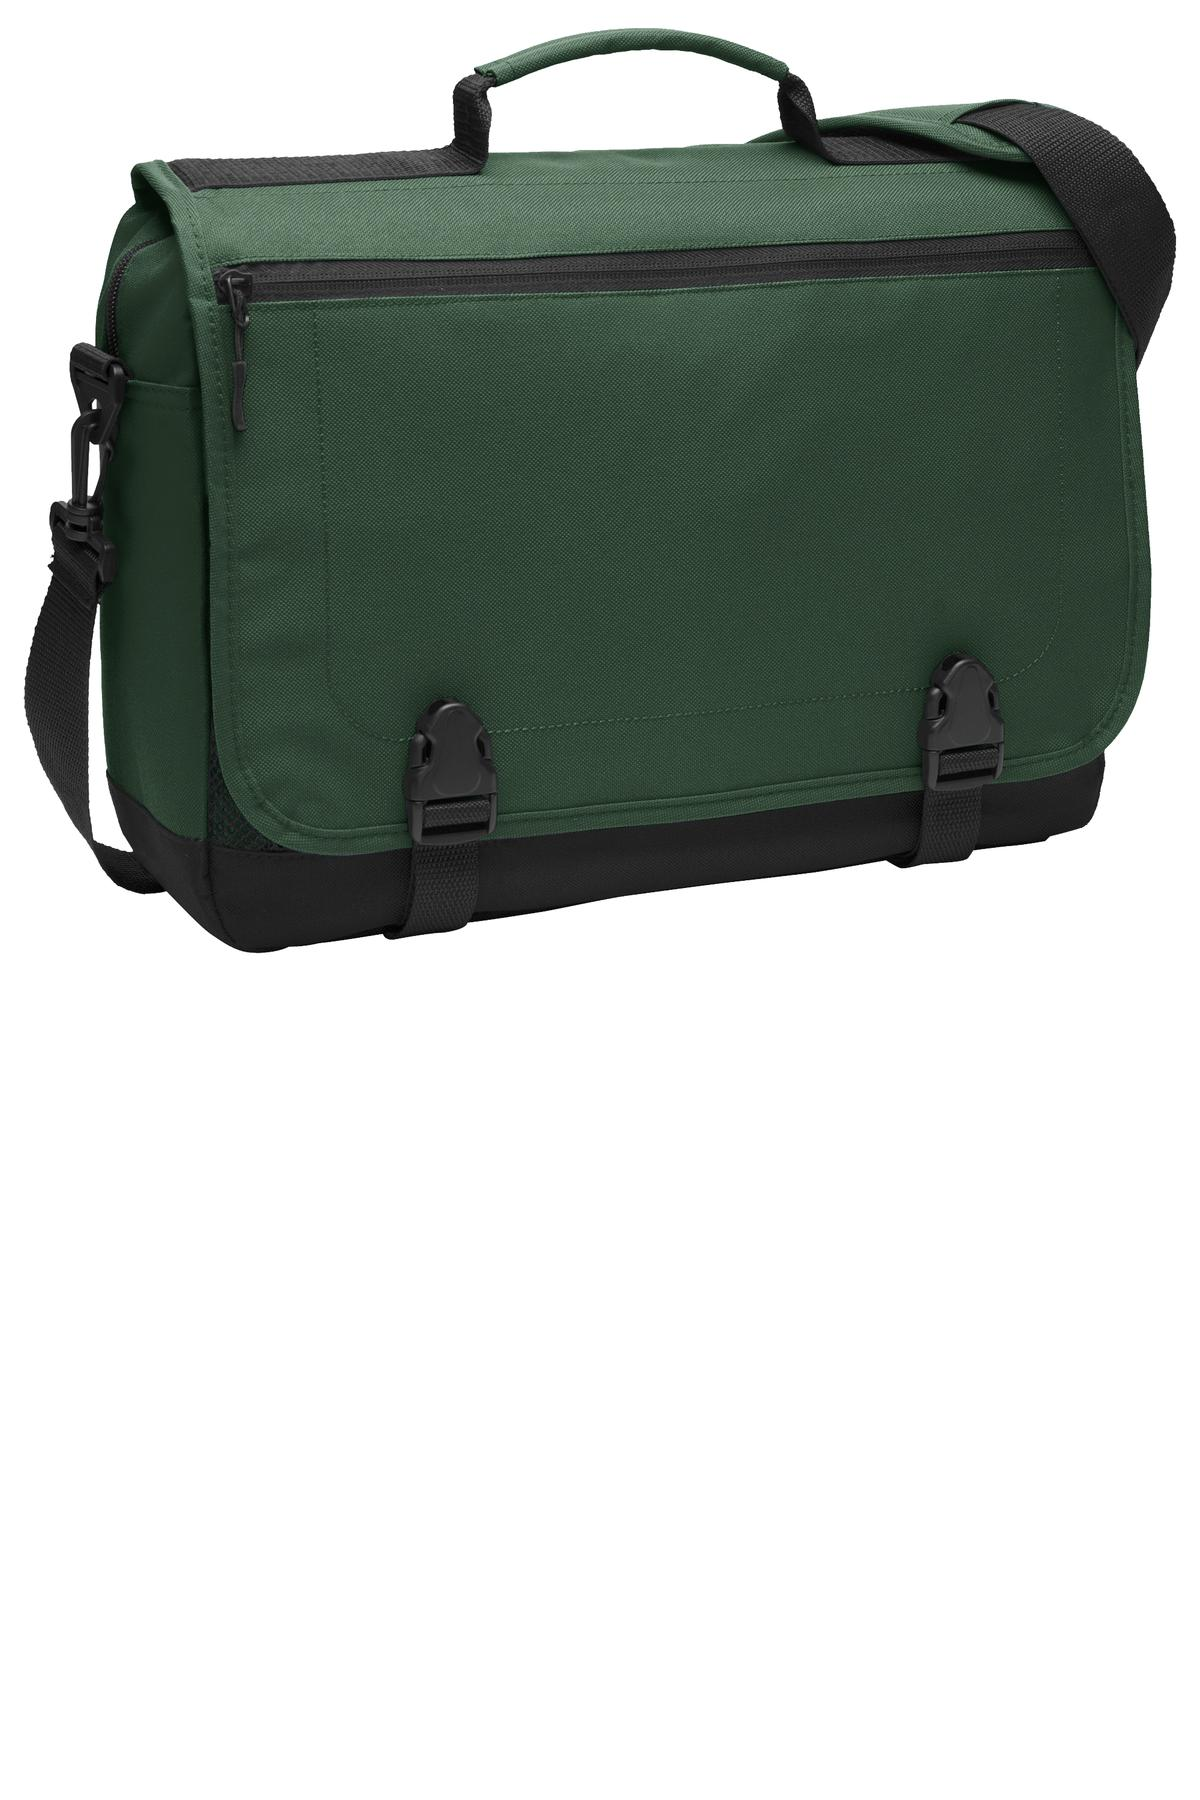 Port Authority ®  Messenger Briefcase. BG304 - Forest Green